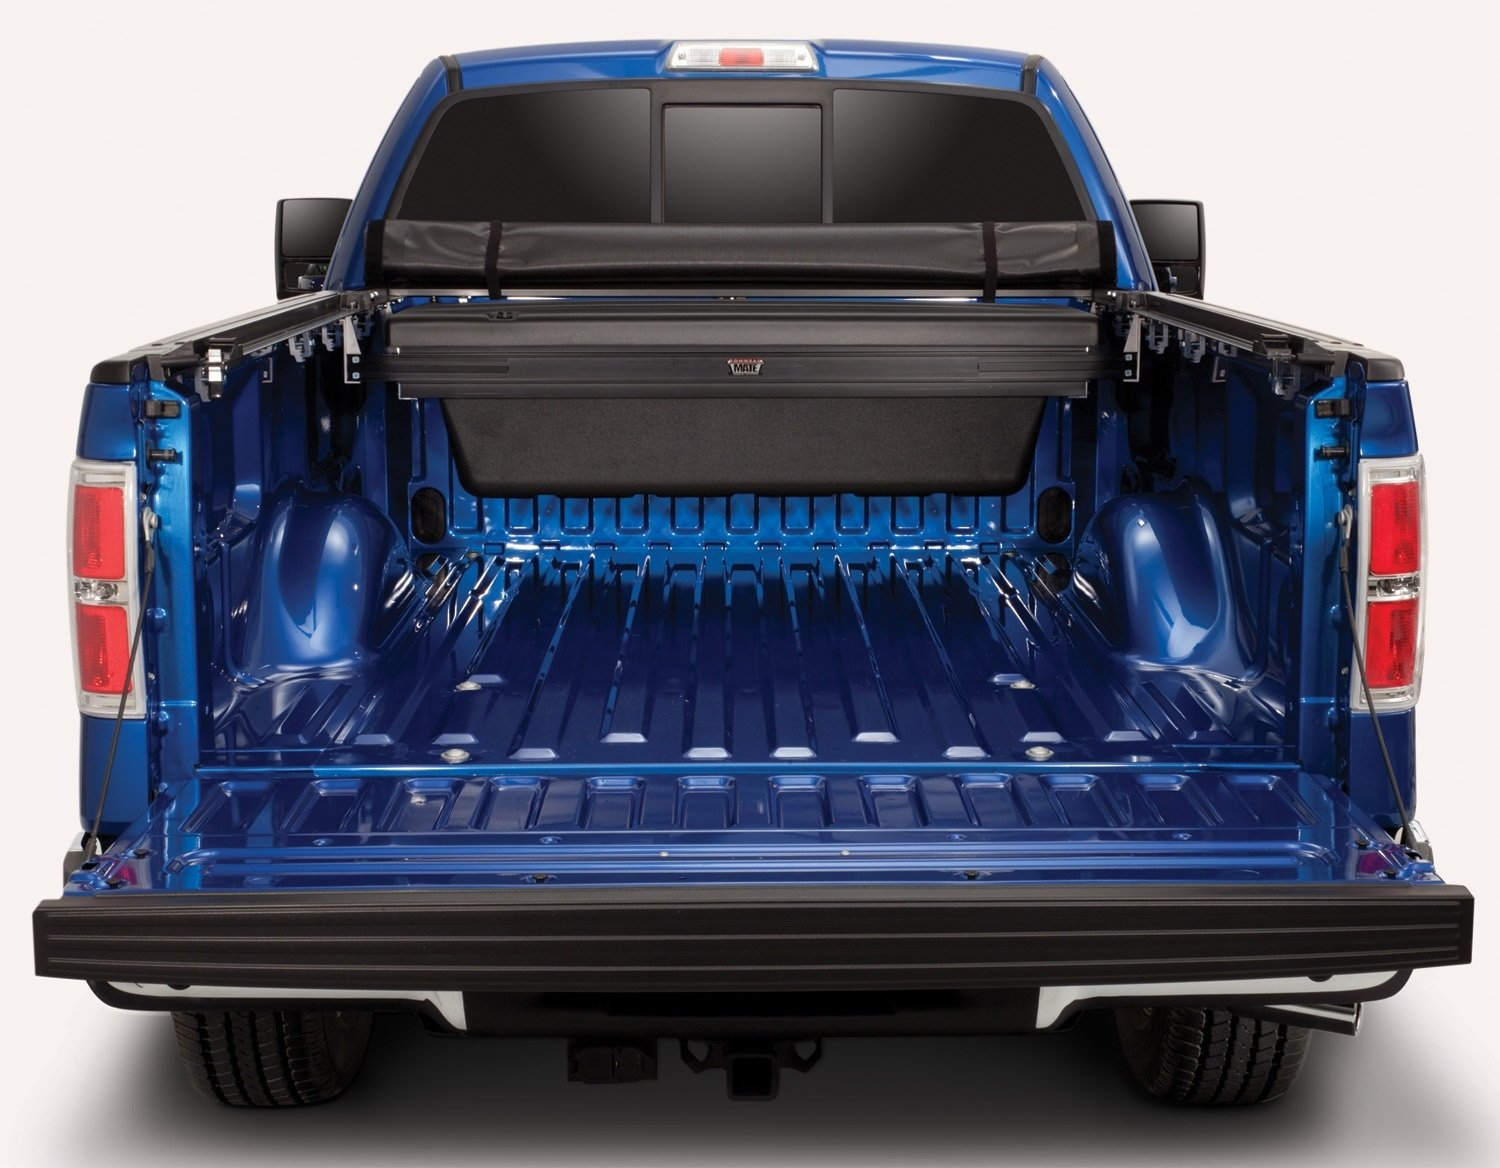 TruXedo Truck Luggage - TonneauMate Toolbox installed in a blue truck